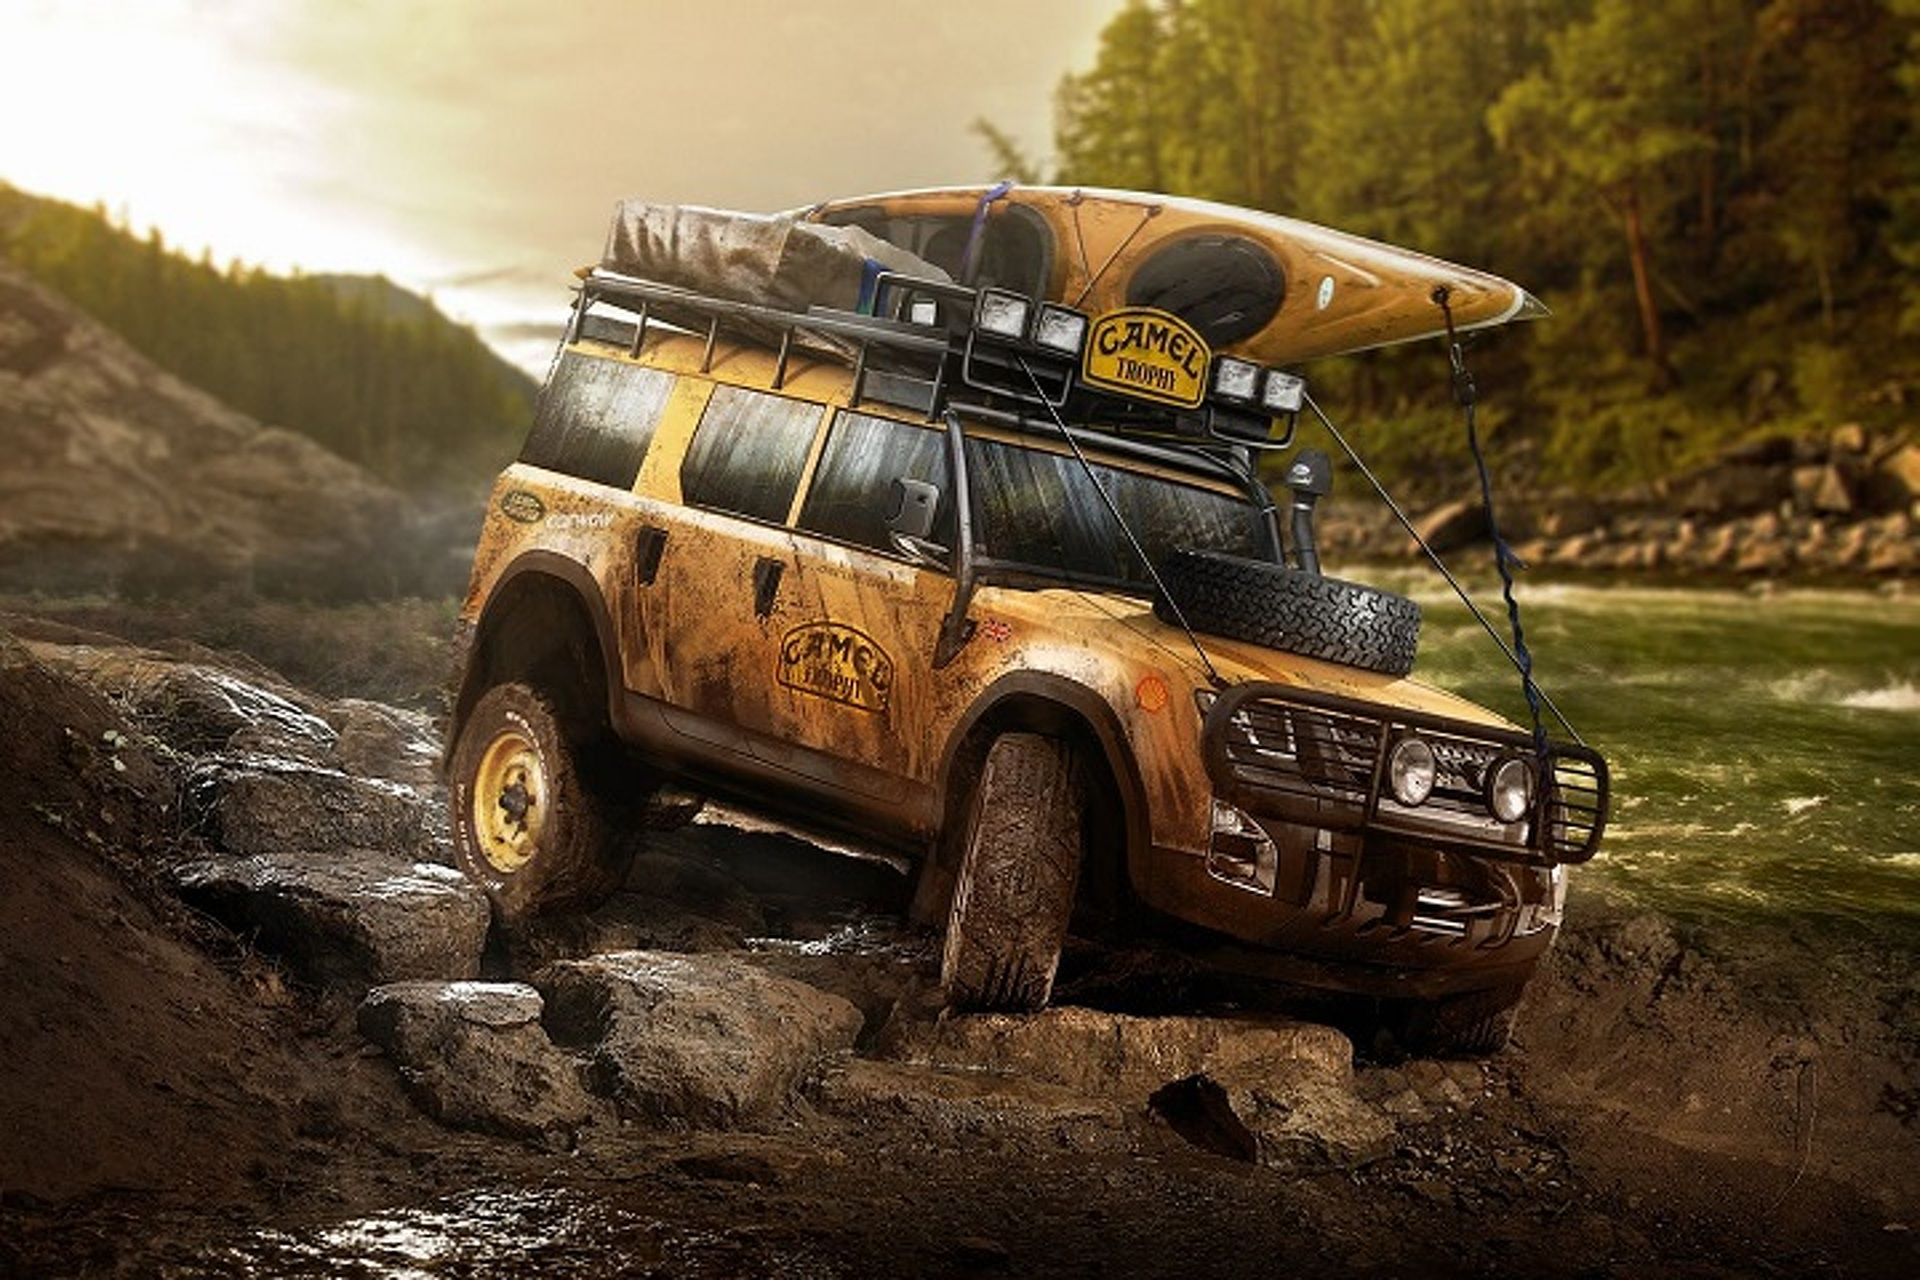 Which of These Crazy Land Rover Defender Concepts Gets Your Vote